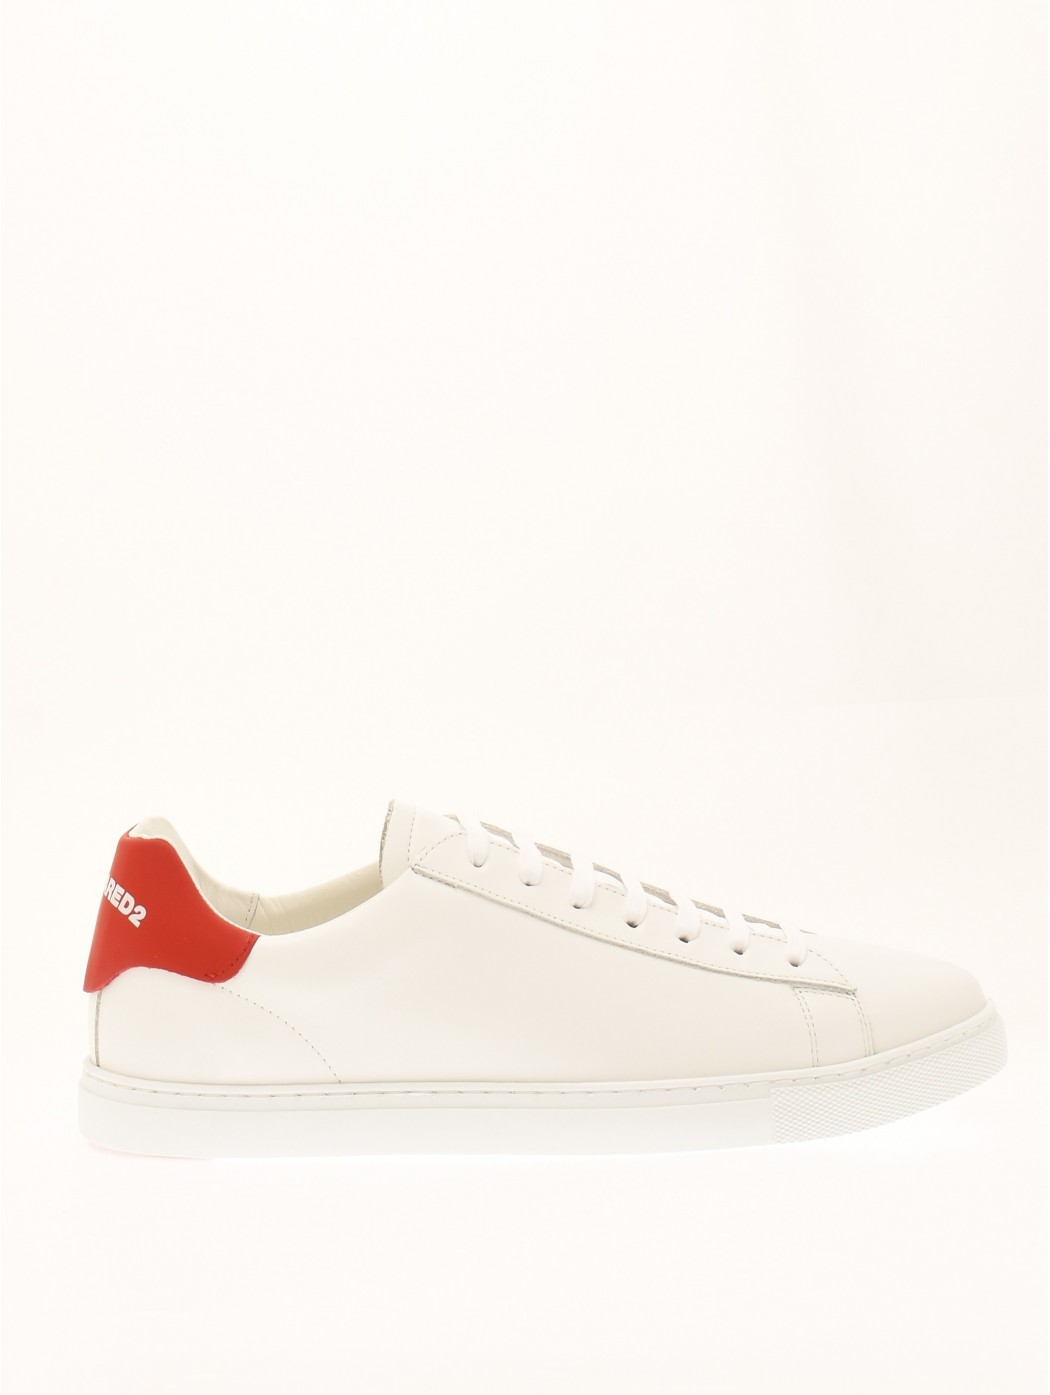 NEW TENNIS SNEAKERS DSQUARED2 SNM000511570001 M1747